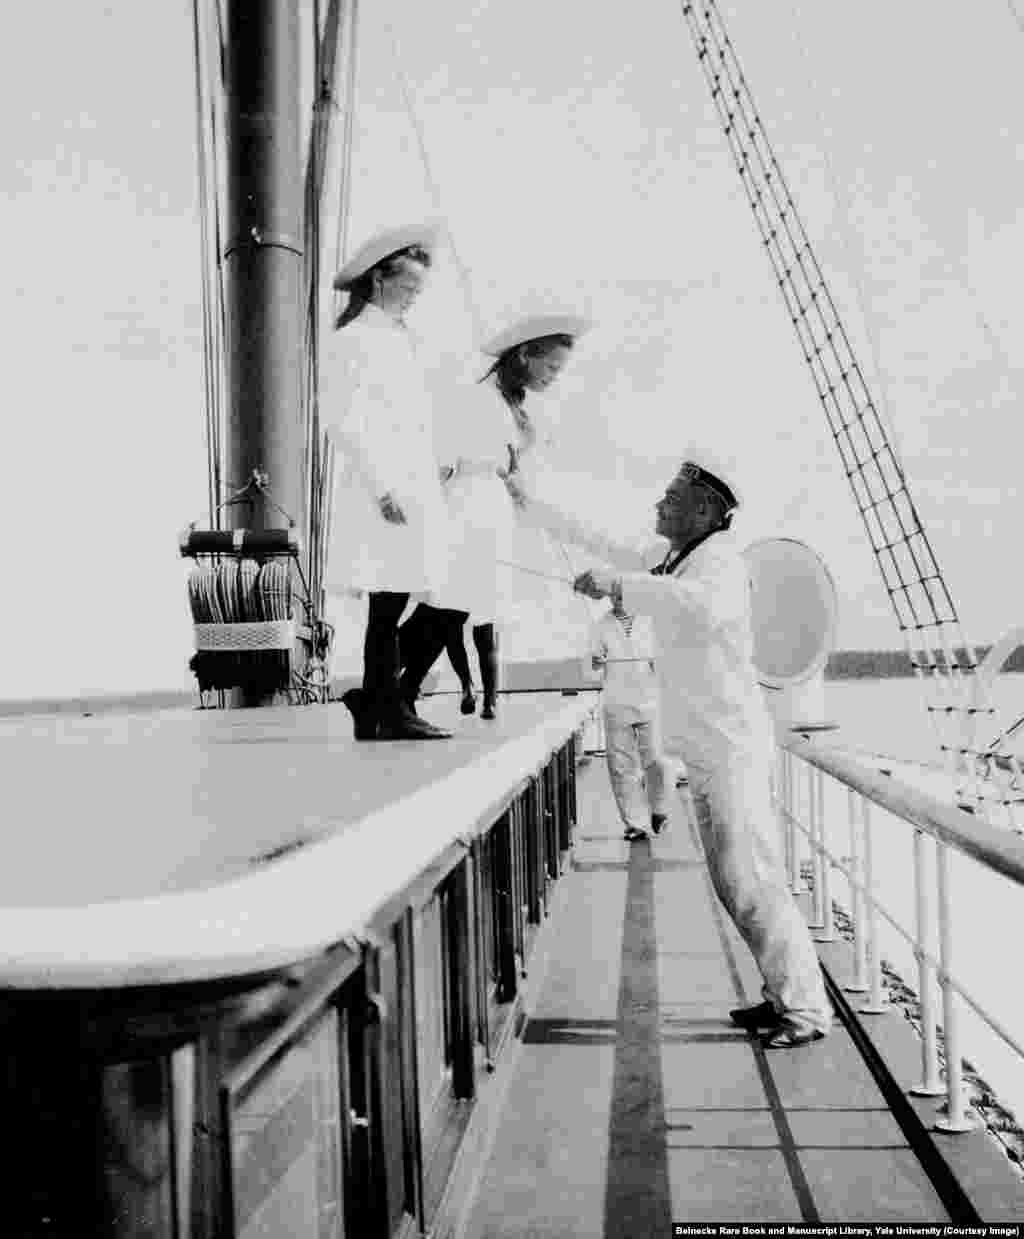 Two of the grand duchesses aboard the Standart. When the children were small, each was assigned a sailor to ensure they didn't fall overboard.